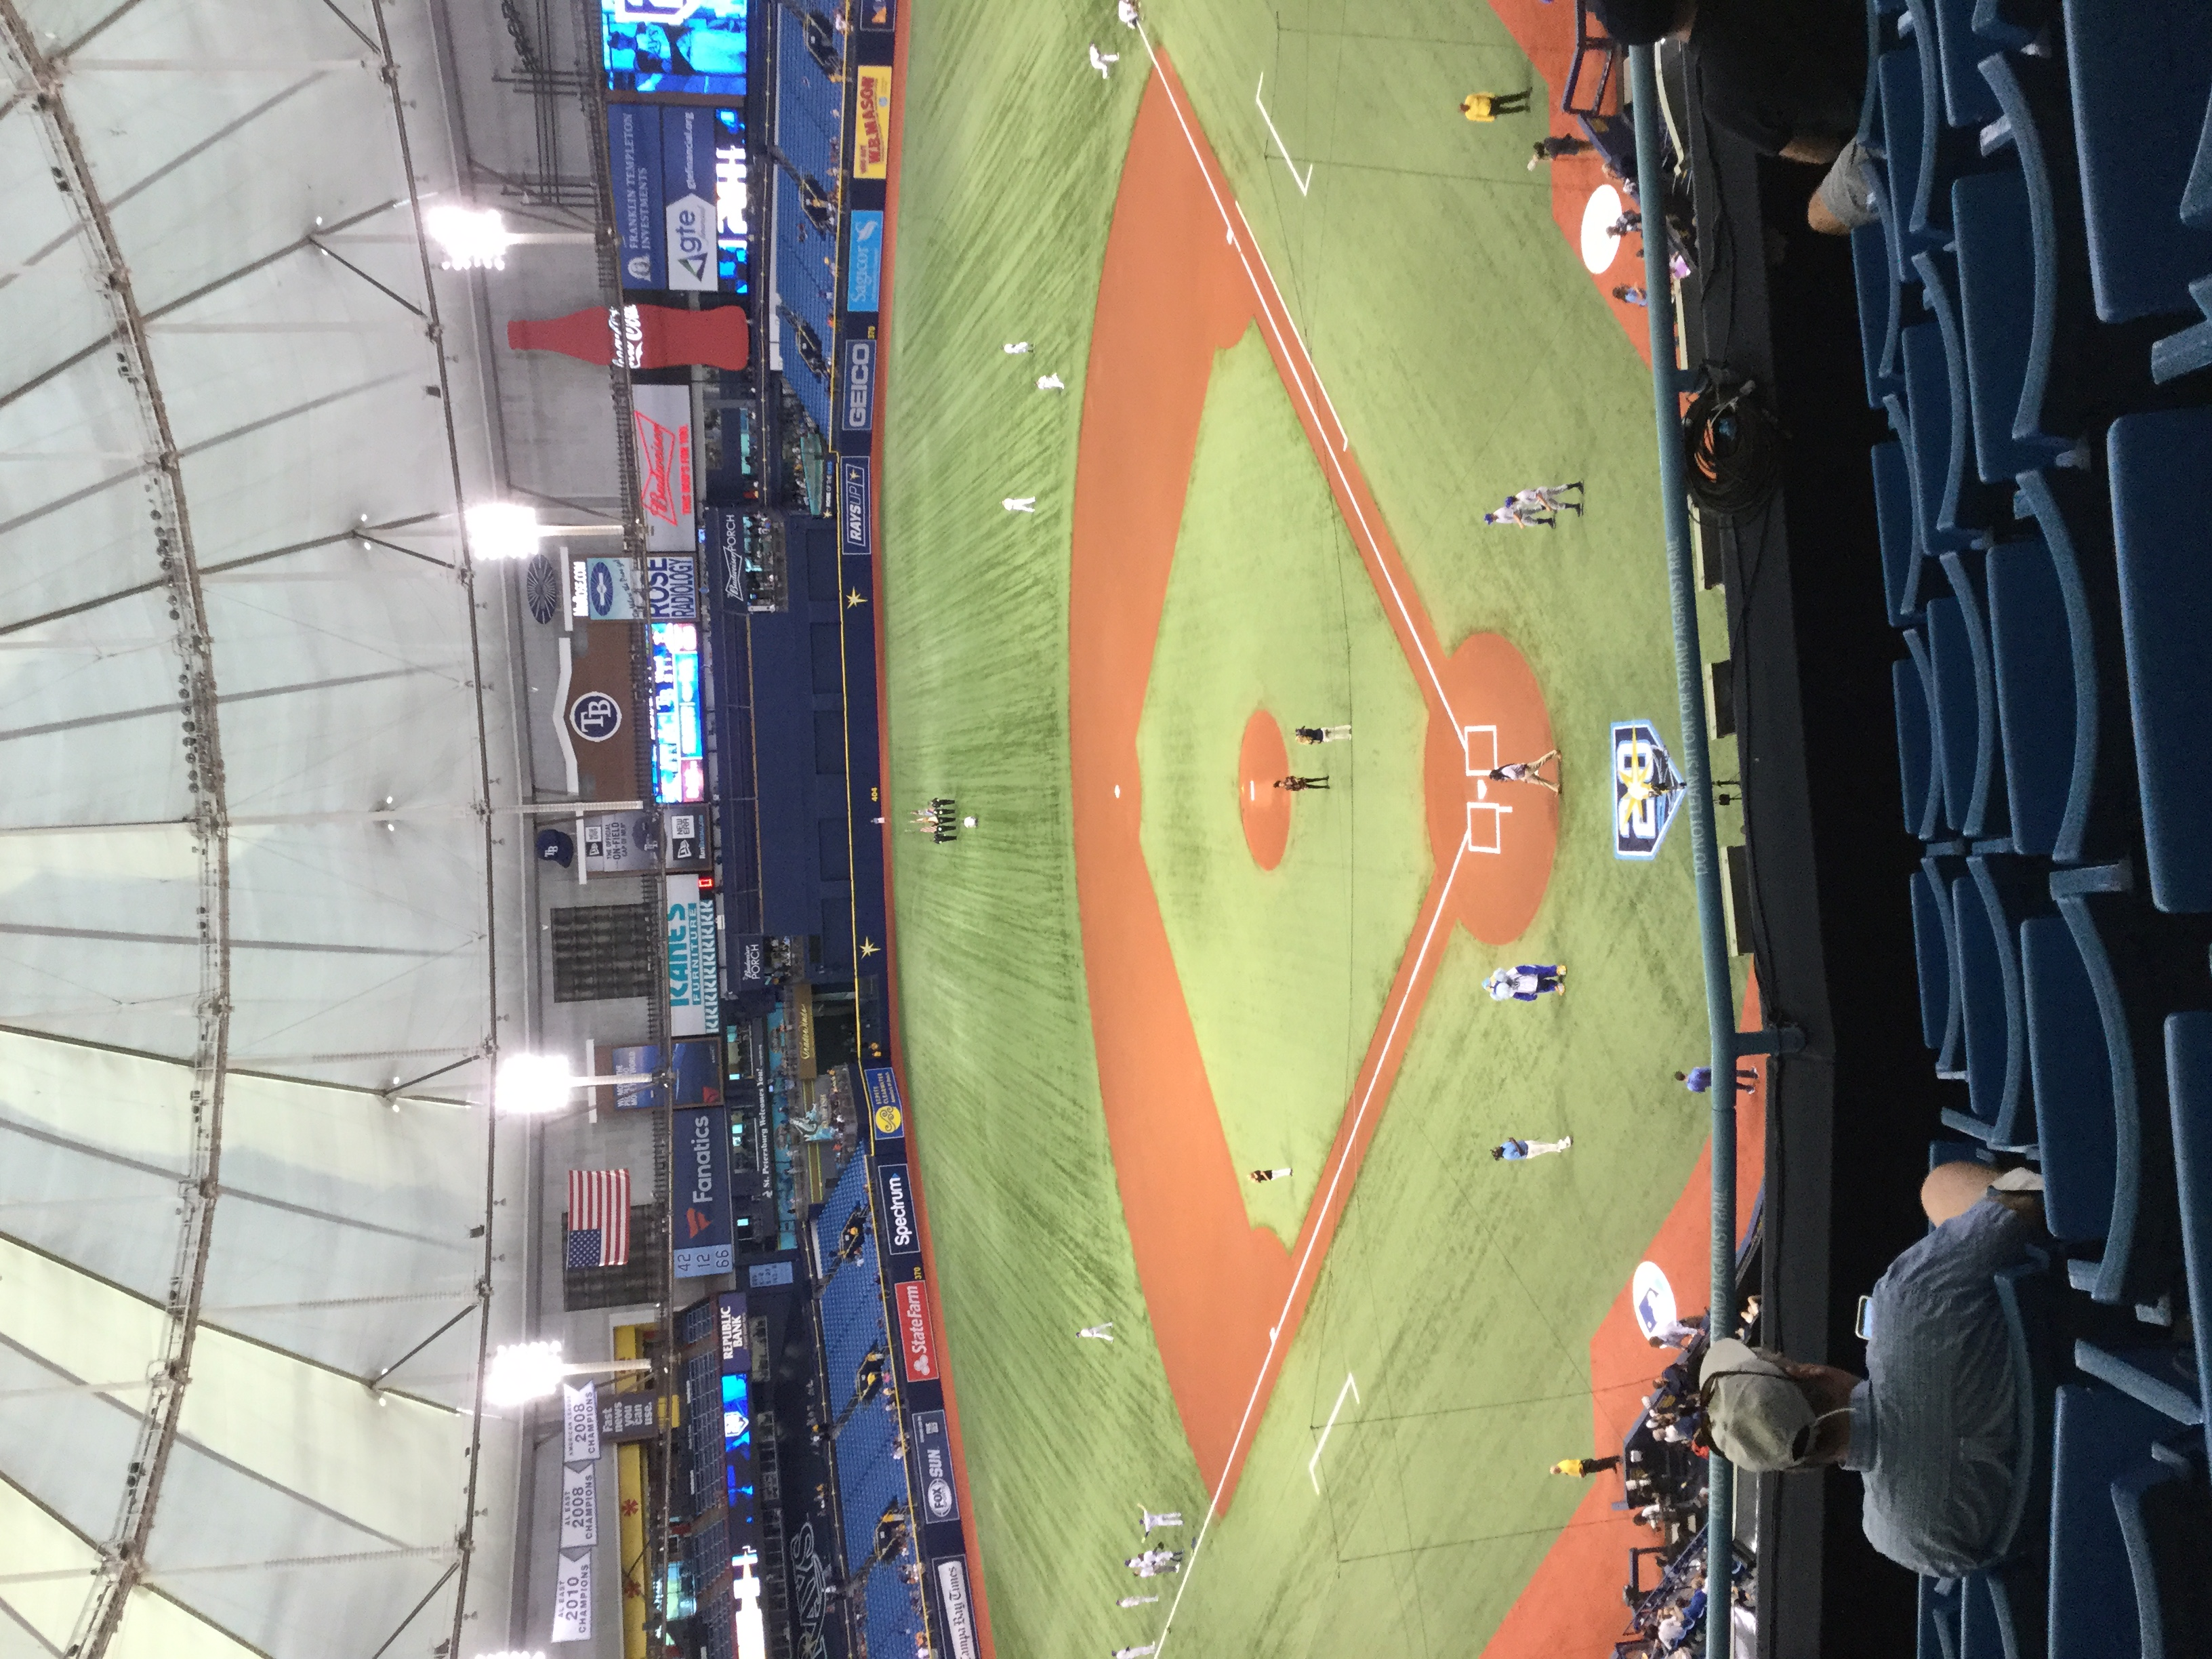 My view at the Trop